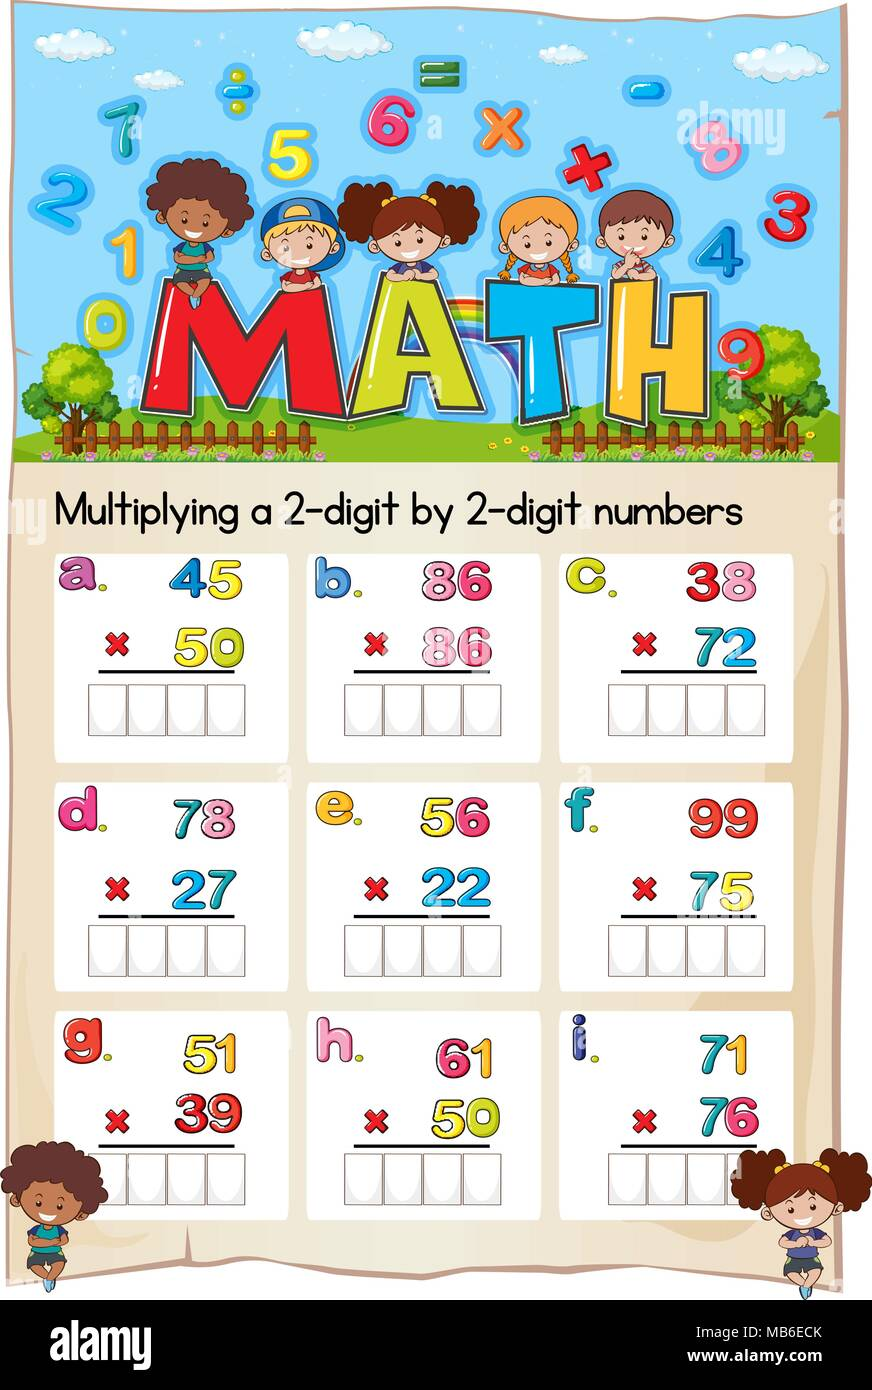 Math Worksheet For Multiply Two Digit By Two Digit Numbers